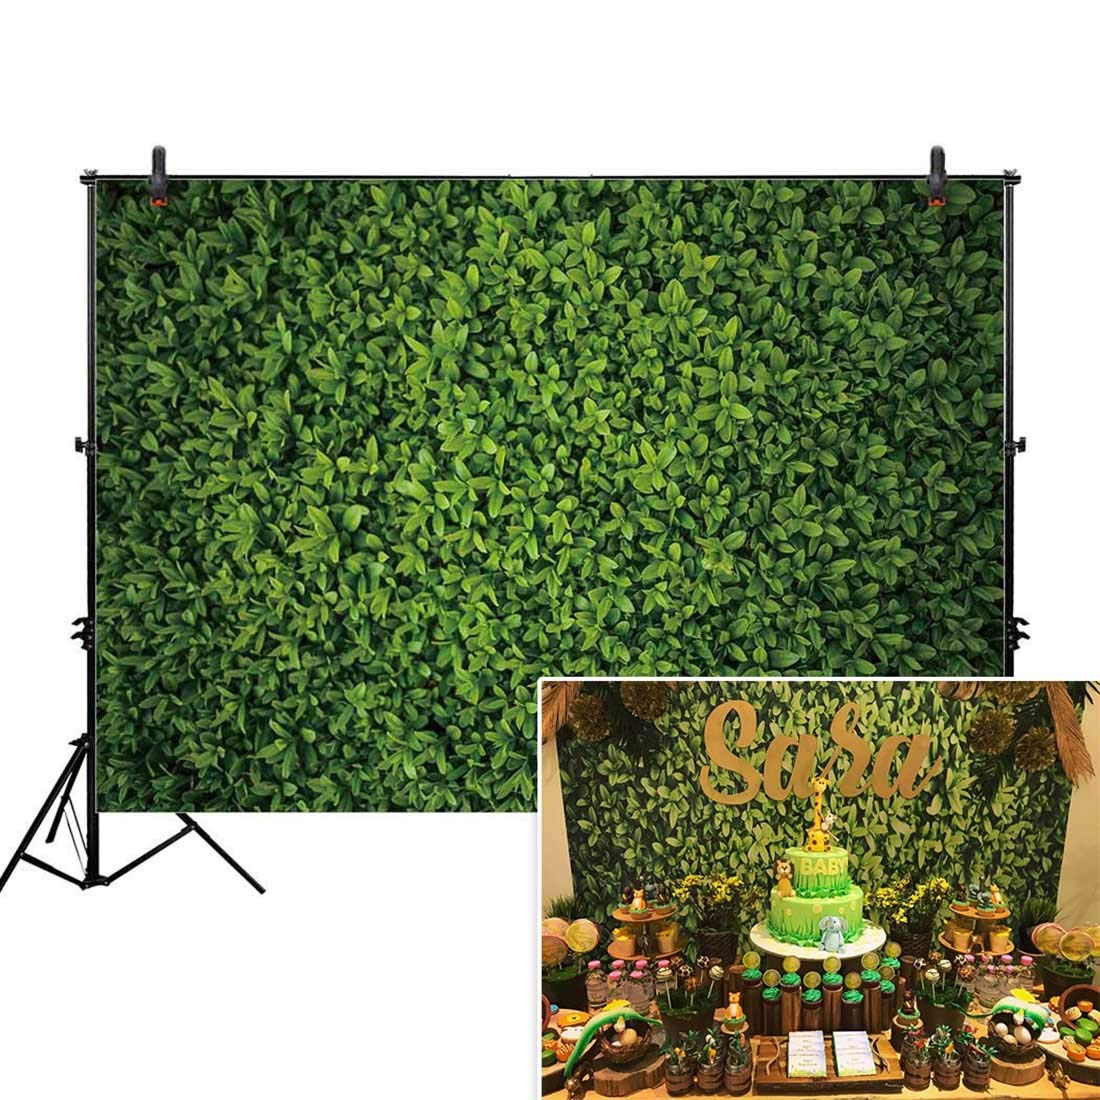 Allenjoy 7x5ft Fabric Green Leaves Wall Backdrop for Photography Grass Floordrop Picture Background Spring Safari Party Ground Decor Outdoorsy Theme Newborn Baby Shower Wedding Photo Studio Props Drop by Allenjoy